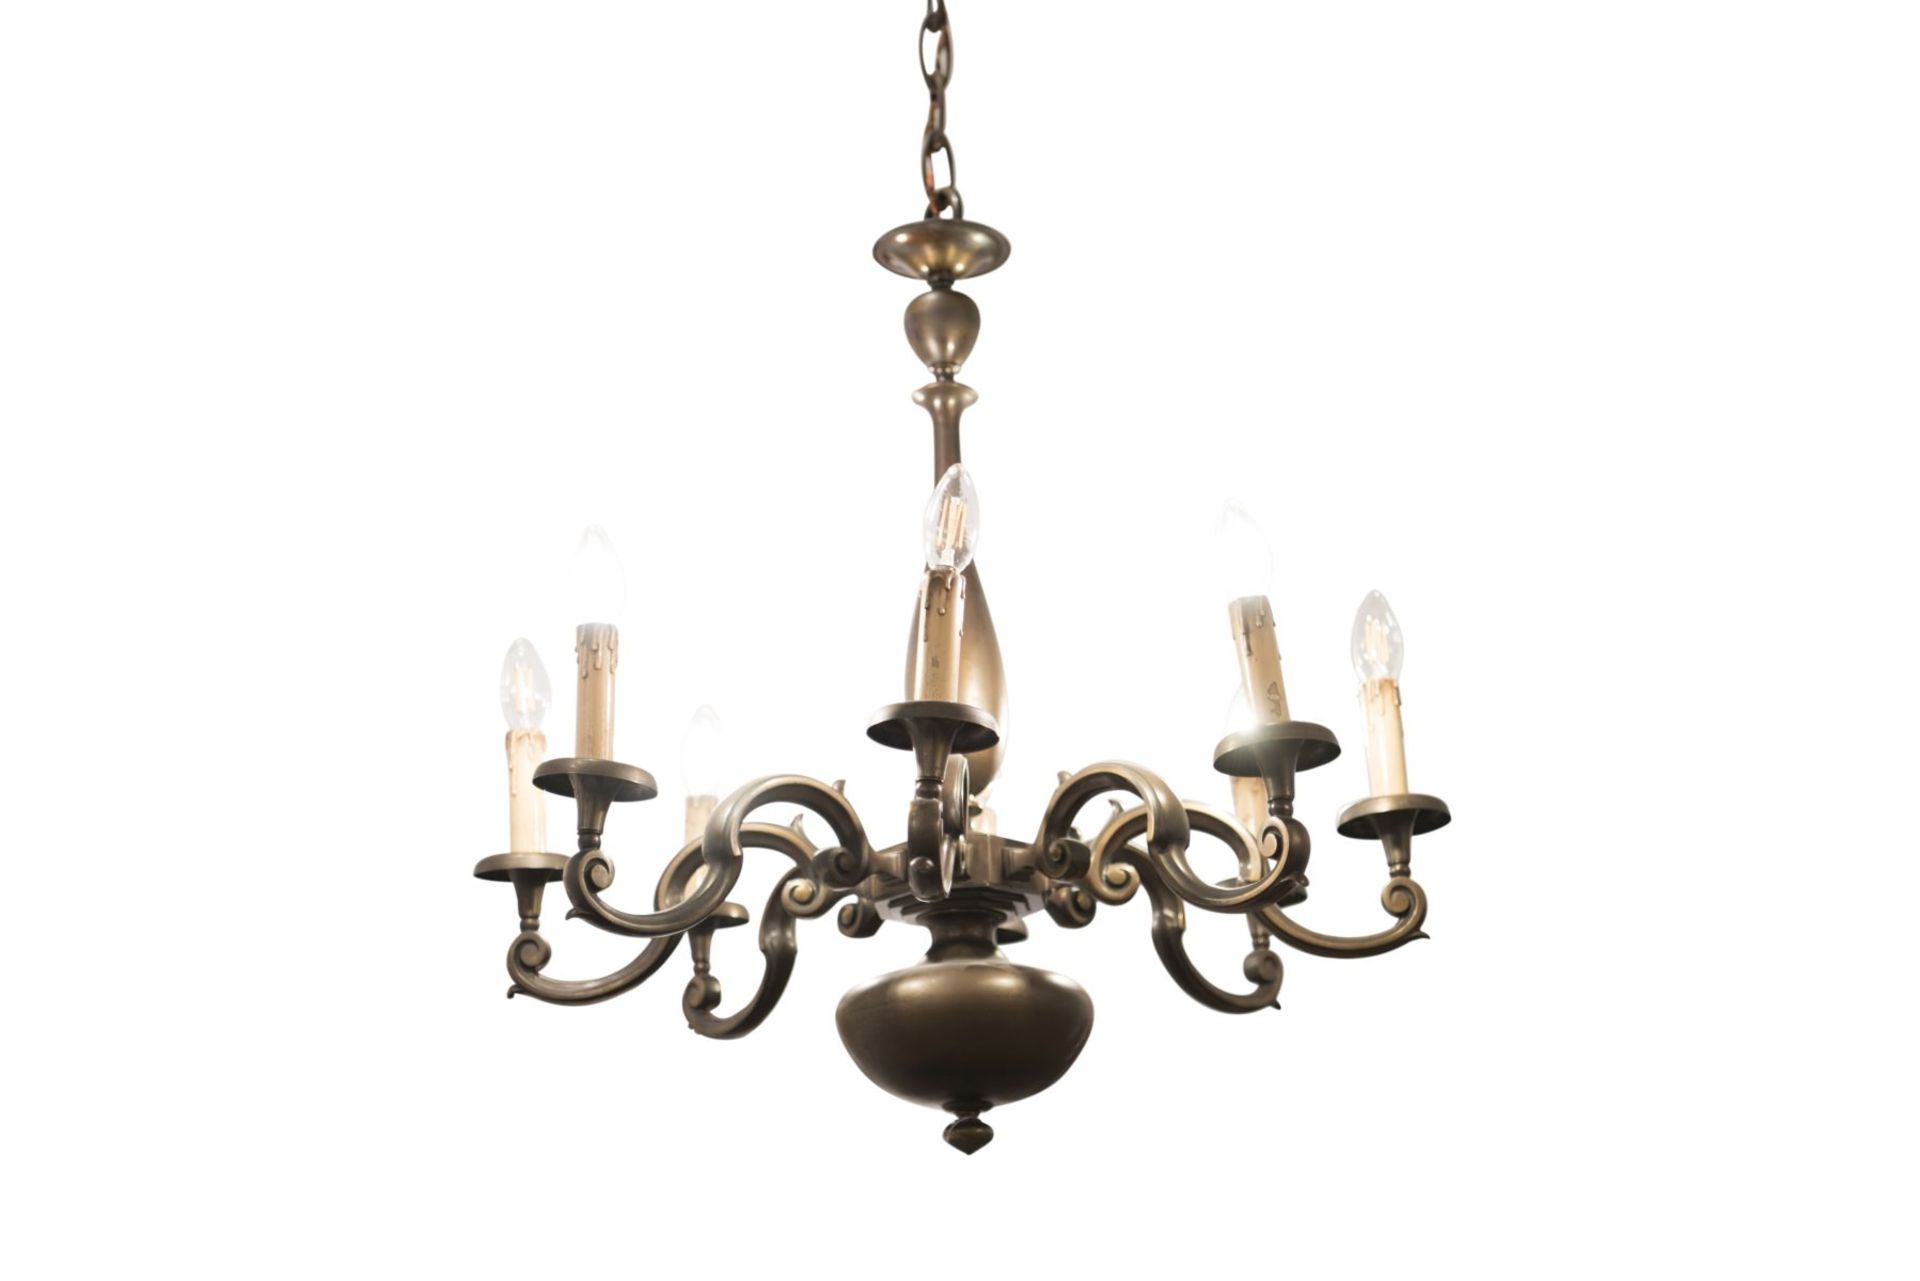 Salon chandelier and two wall appliques - Image 2 of 10